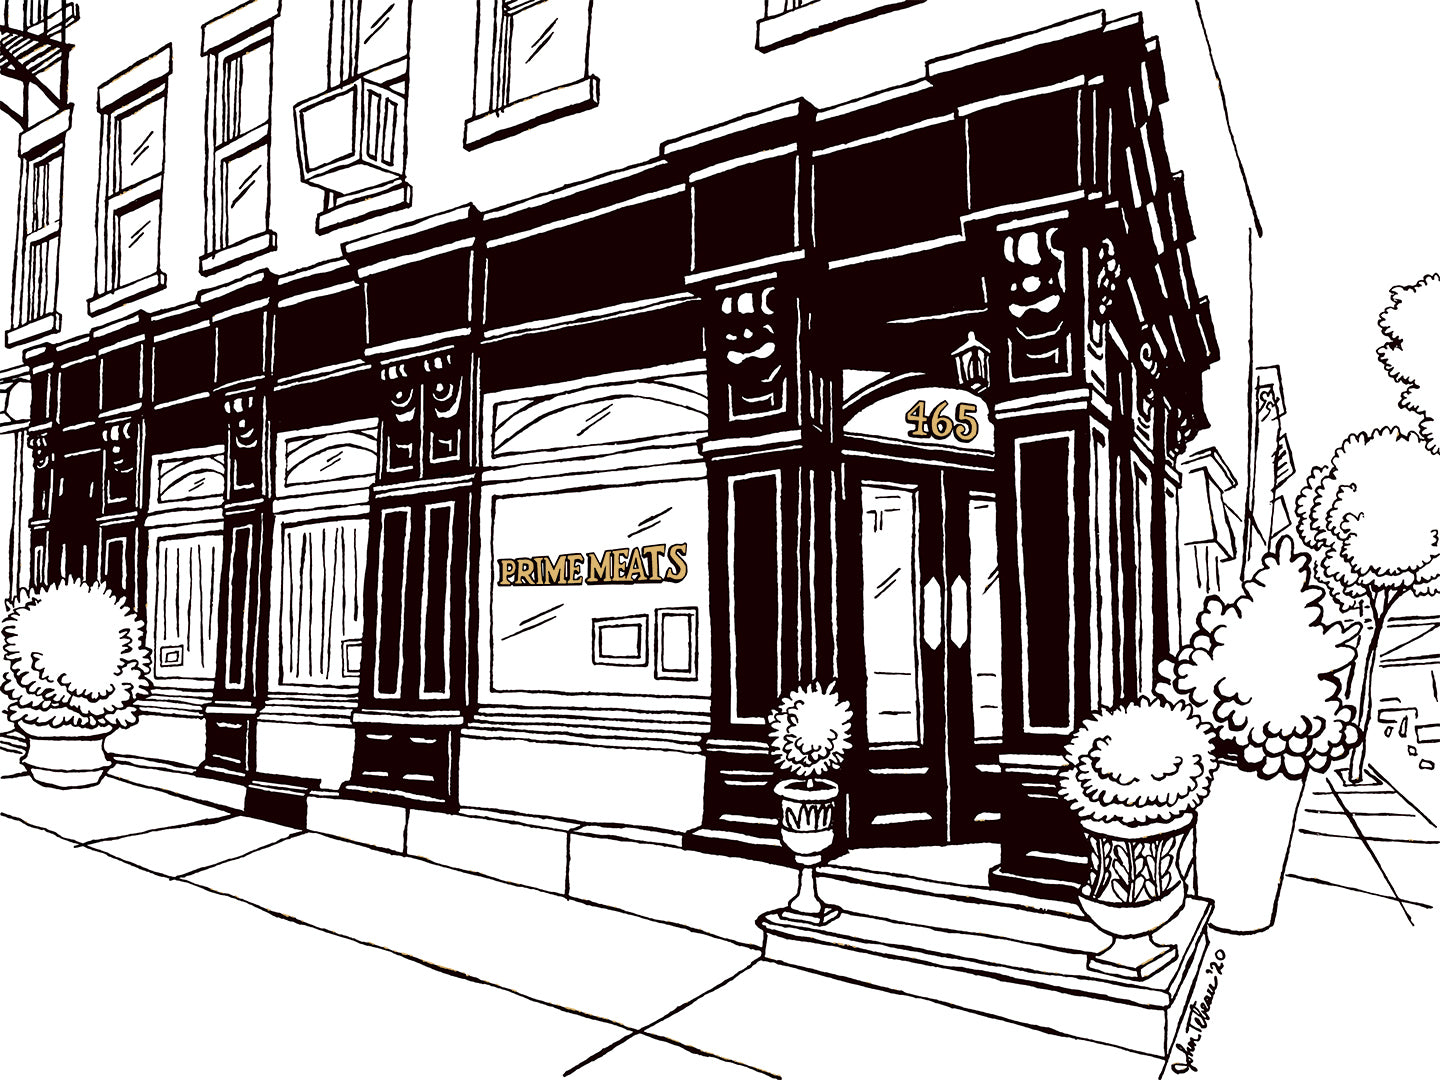 Prime Meats Brooklyn art by John Tebeau © 2020